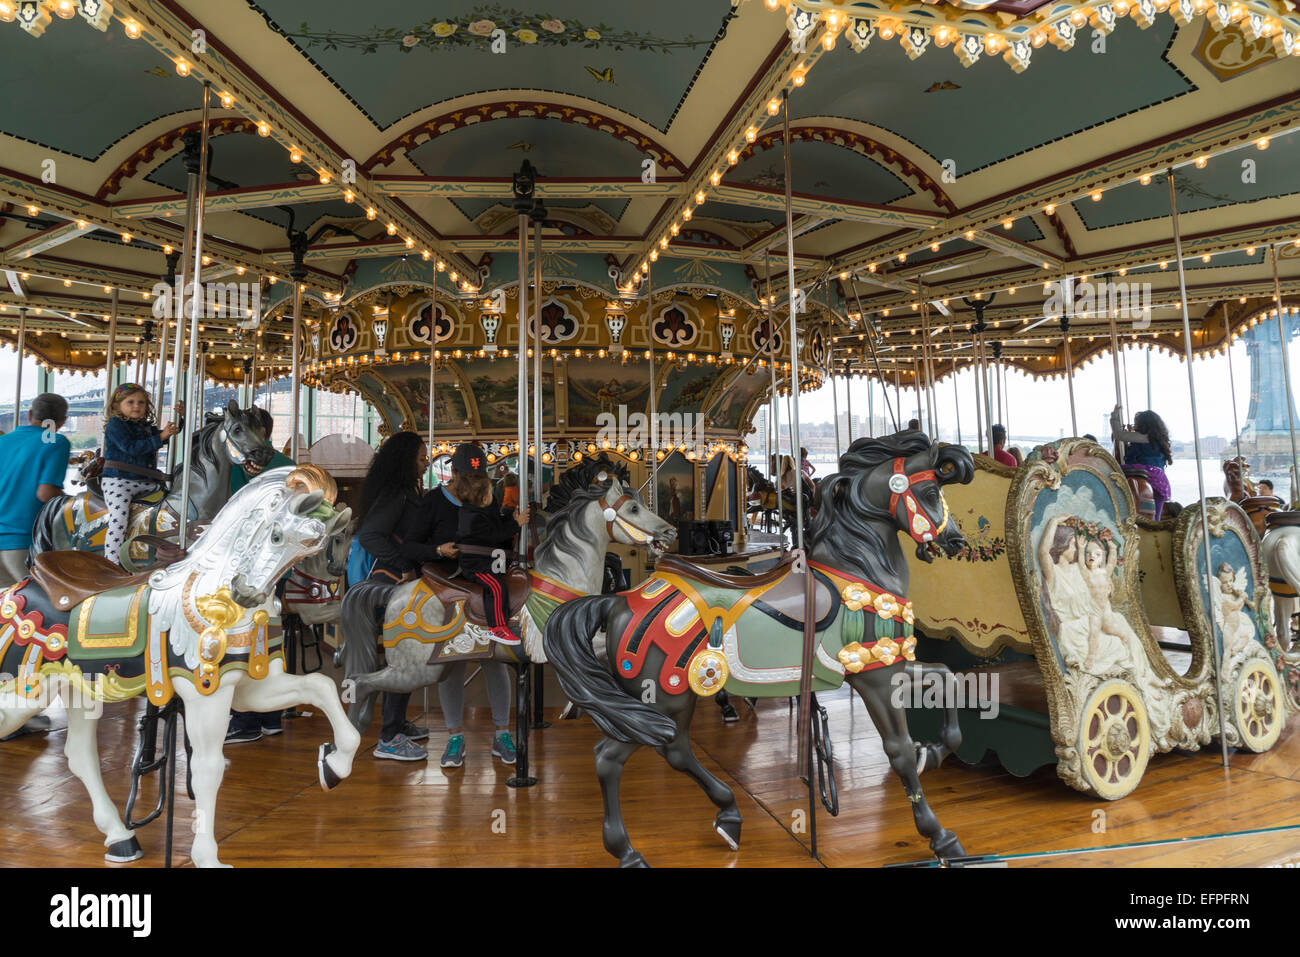 Jane's Carousel, a restored 1920s fairground carousel now located in Brooklyn Bridge Park, Brooklyn, New York, - Stock Image